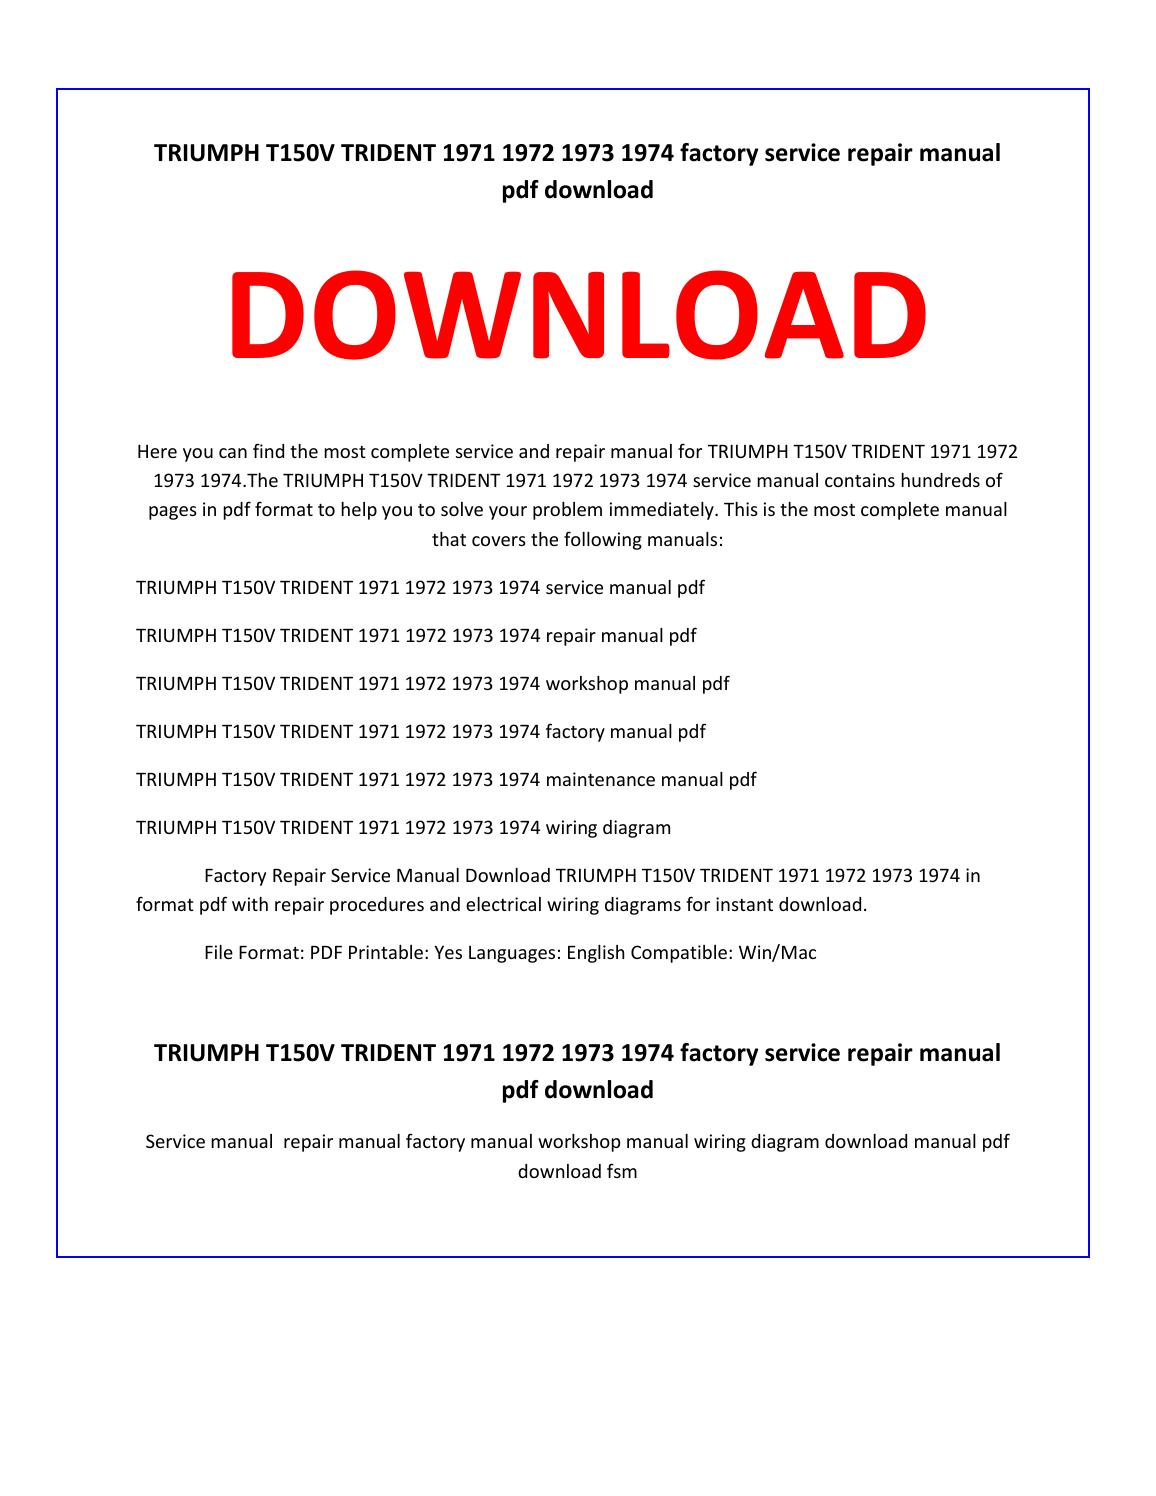 Triumph T150v Trident 1971 1972 1973 1974 Service Repair Manual By Triumph  Bonneville Triumph T150v Wiring Diagram